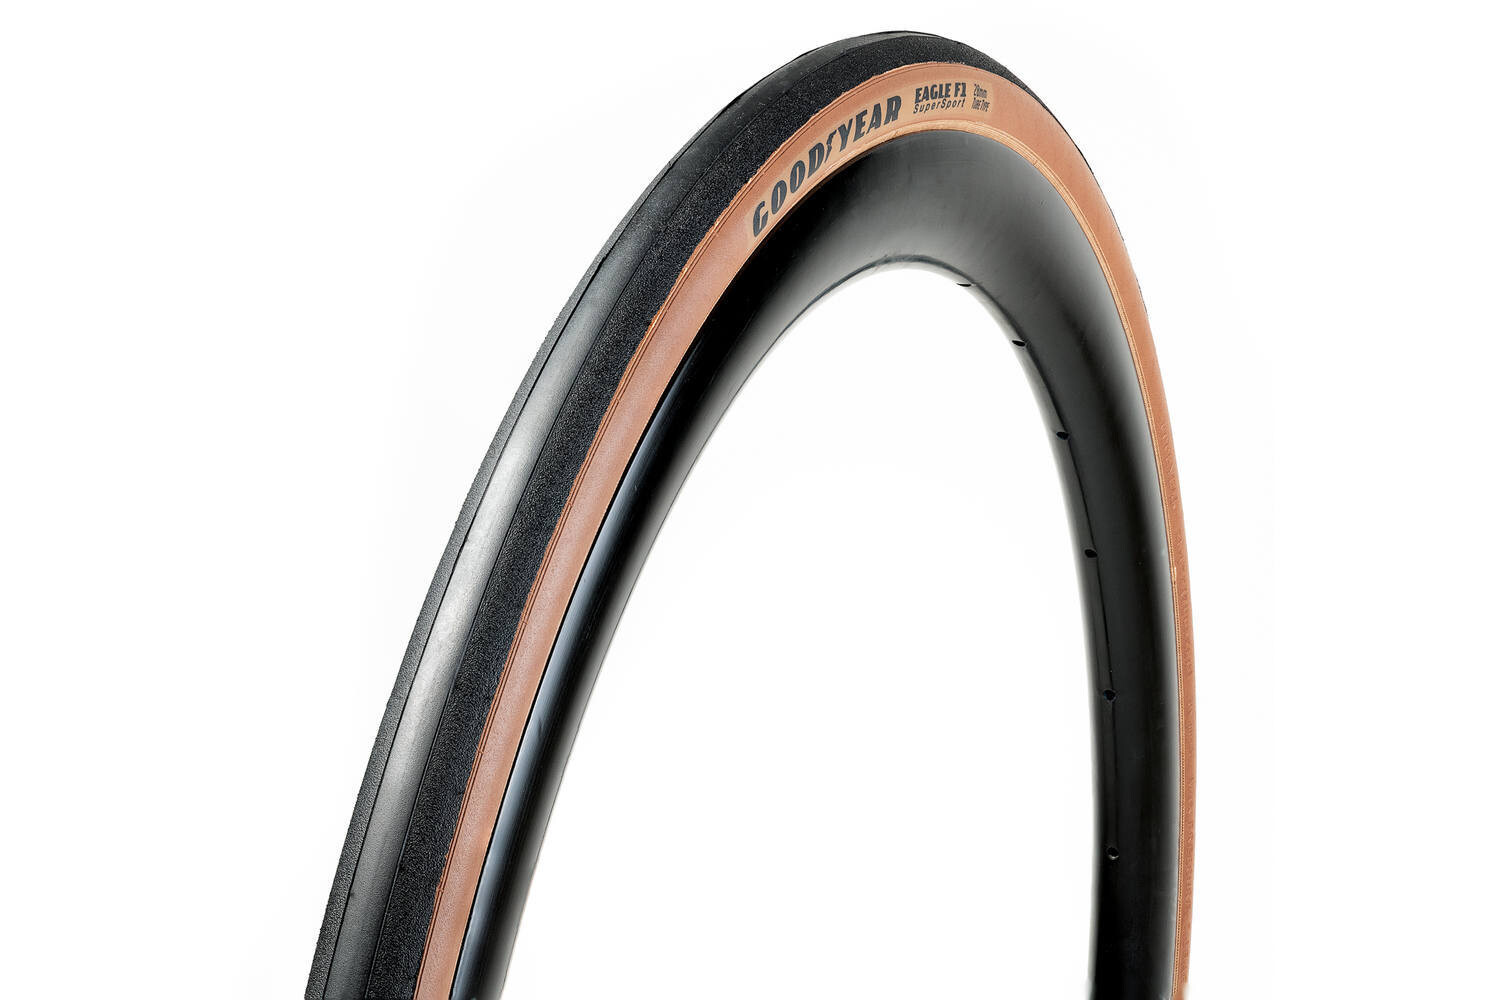 Goodyear F1 SUPERSPORT TUBELESS